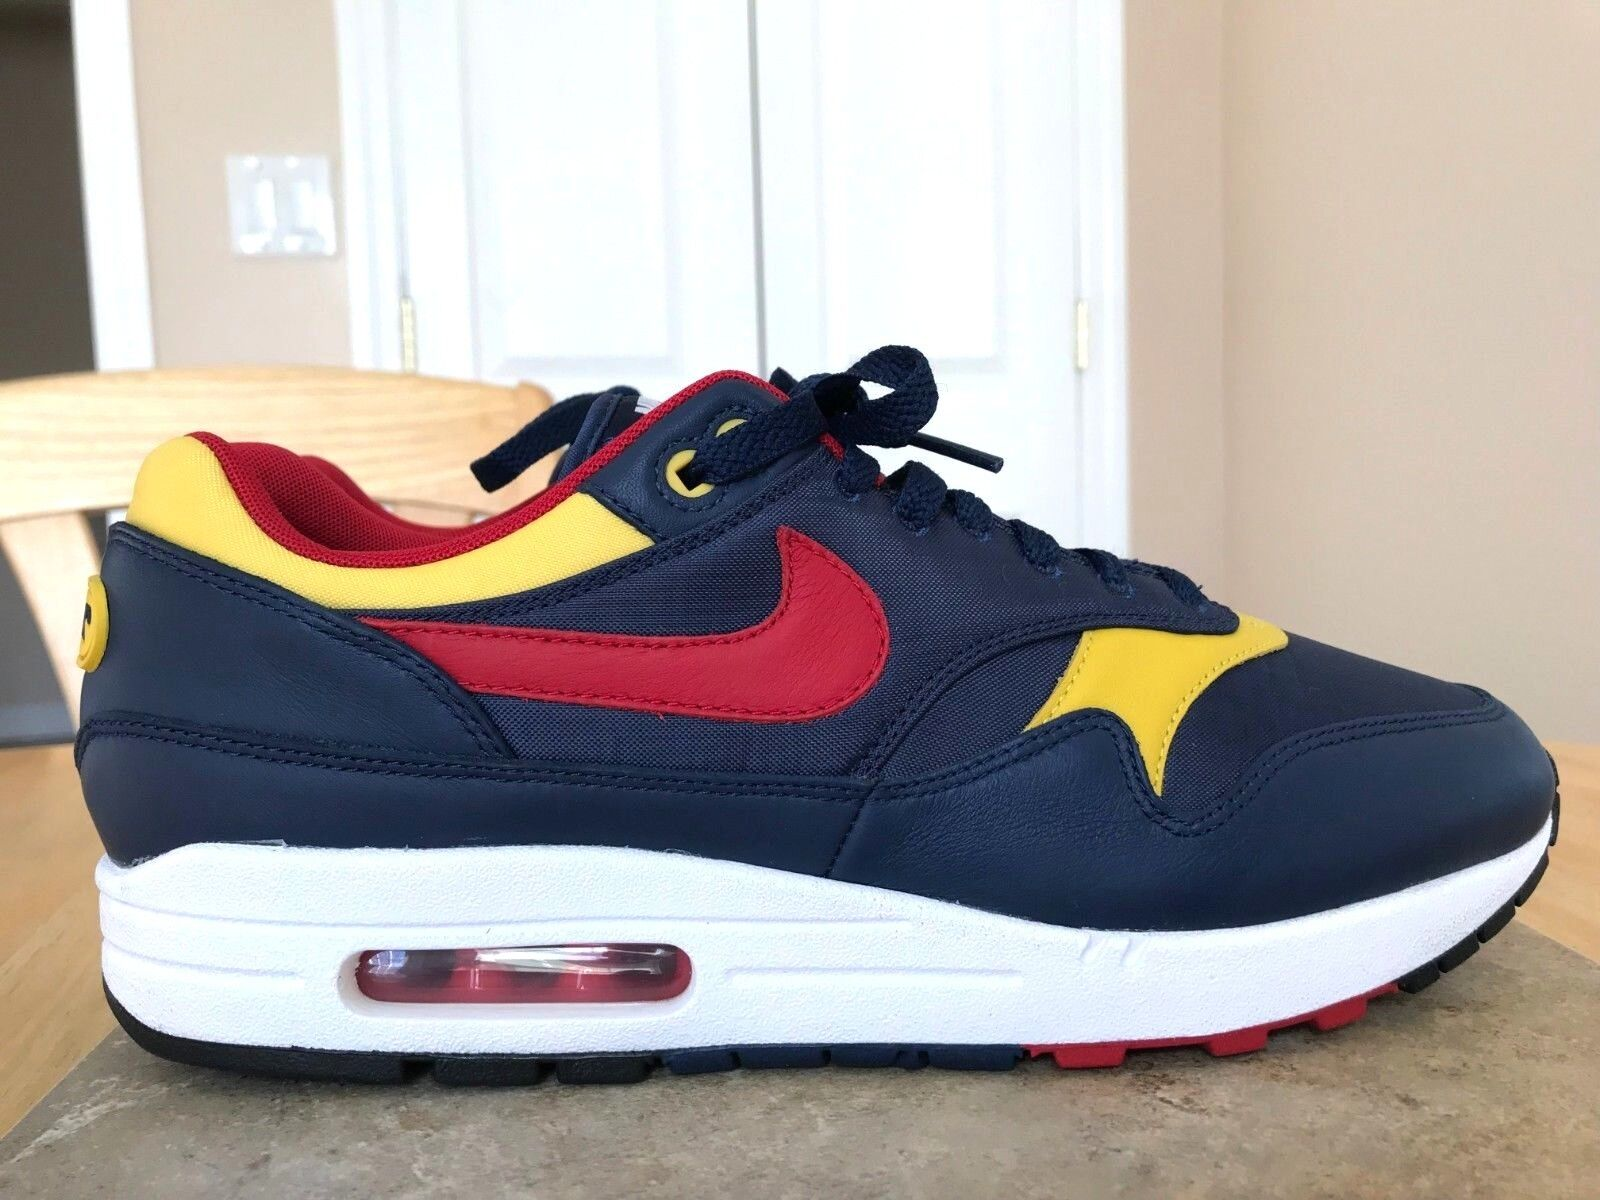 NIKE 2017 AIR MAX 1 MEN'S SHOES SIZE 11 RED BLUE Y